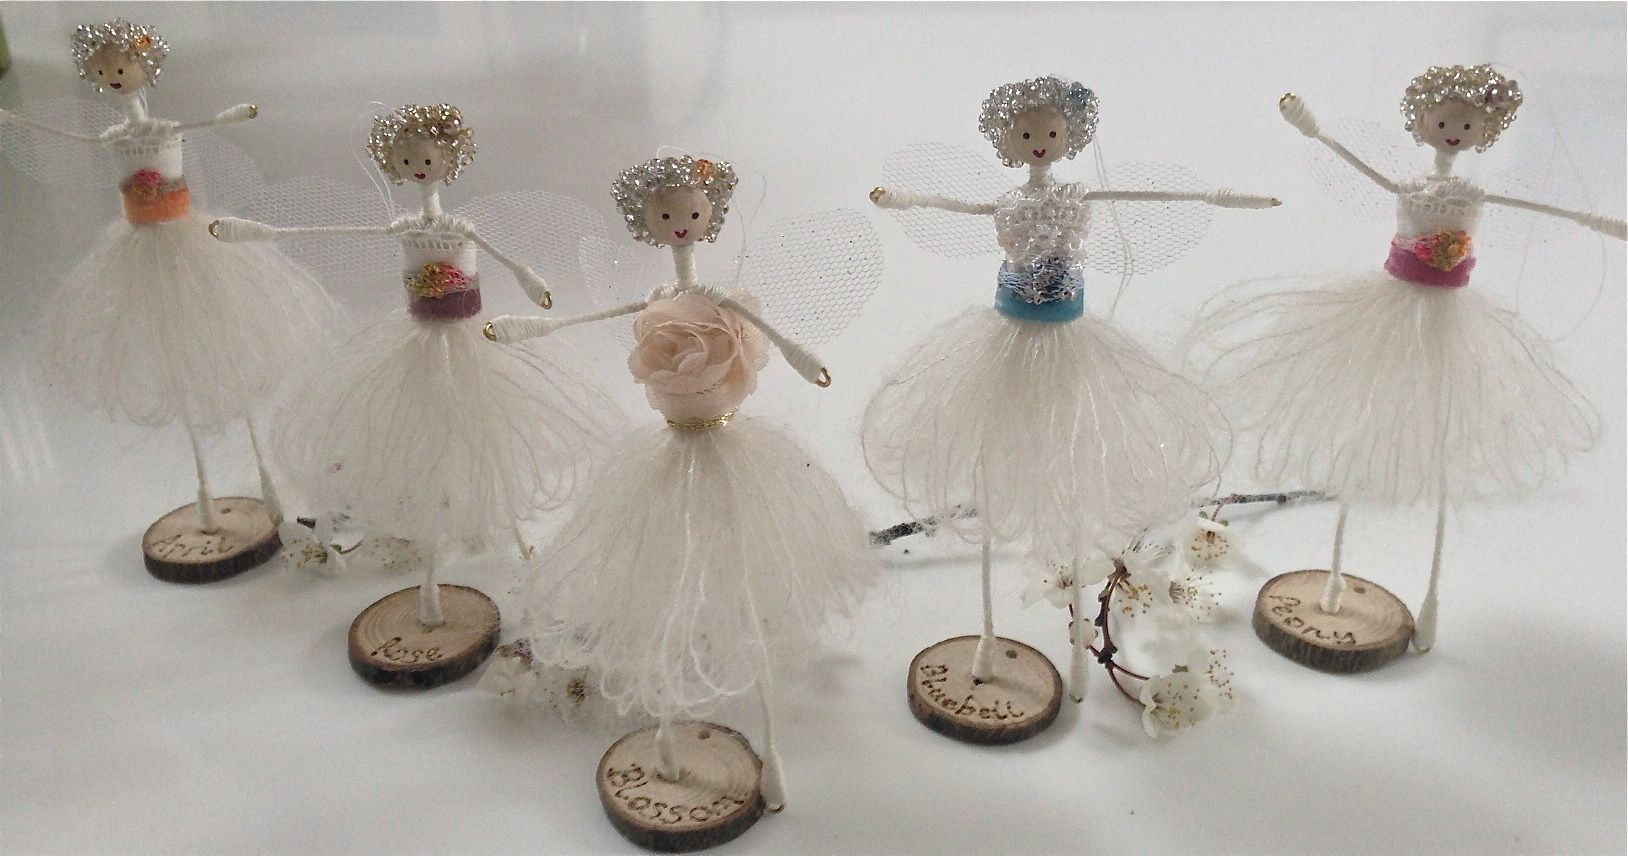 The new Spring Fairies of Knapwell Wood can be personalised - a fantastic Mothers Day or Easter gift.